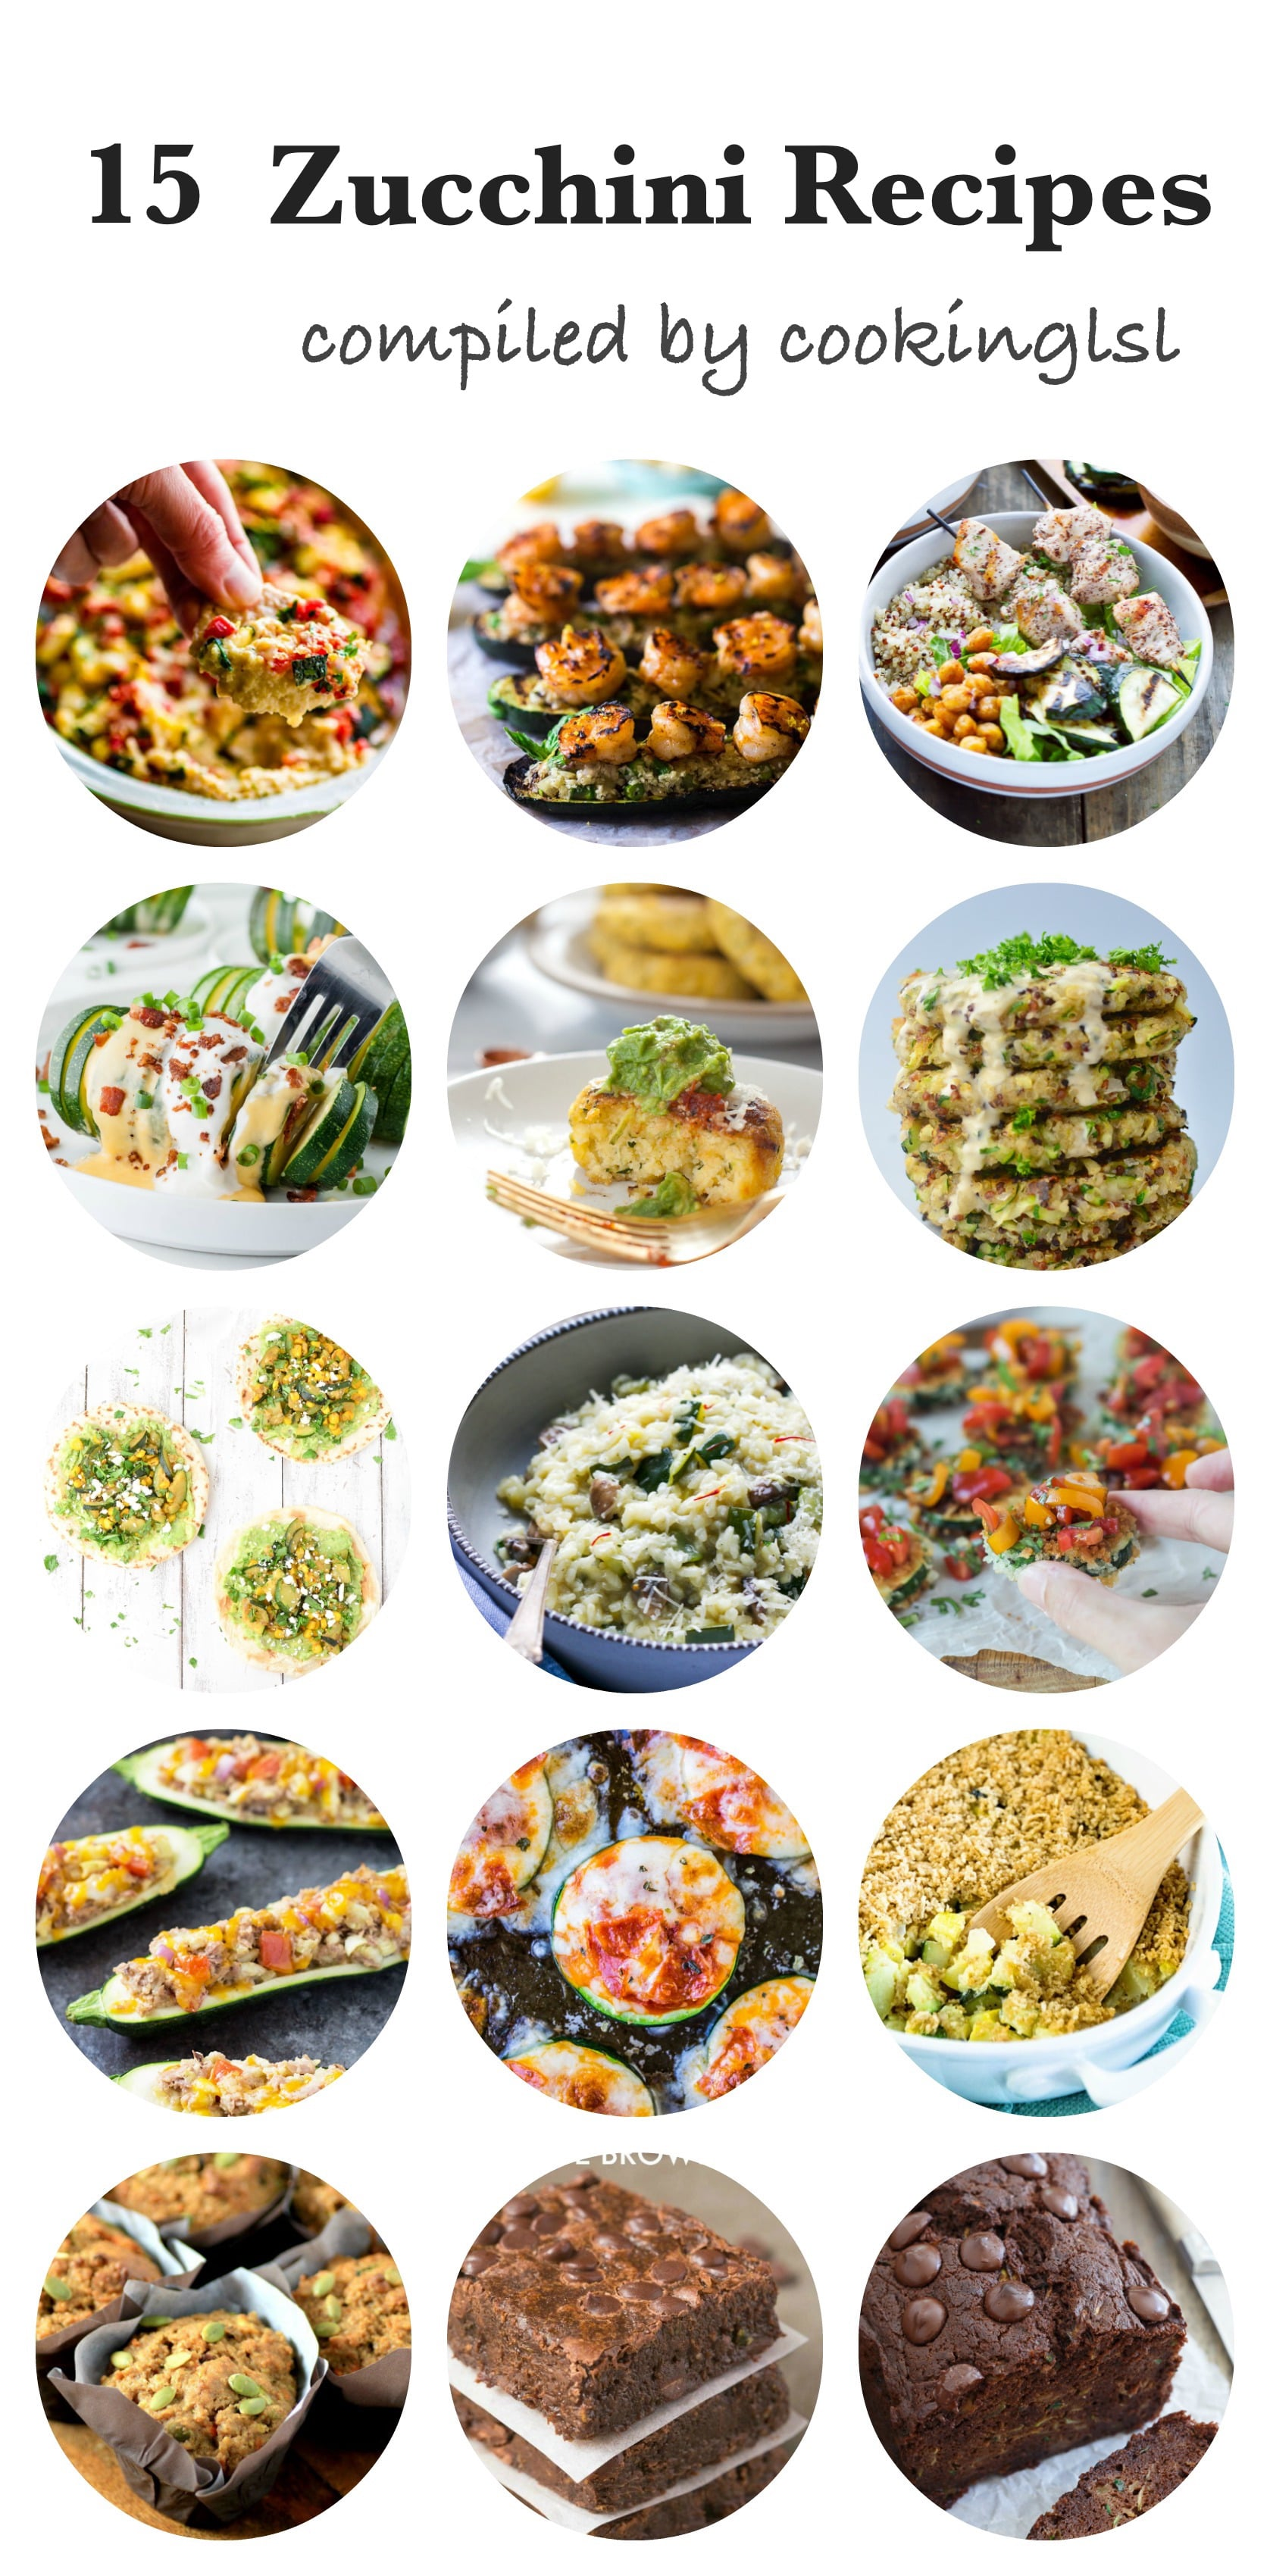 15-zucchini-recipes